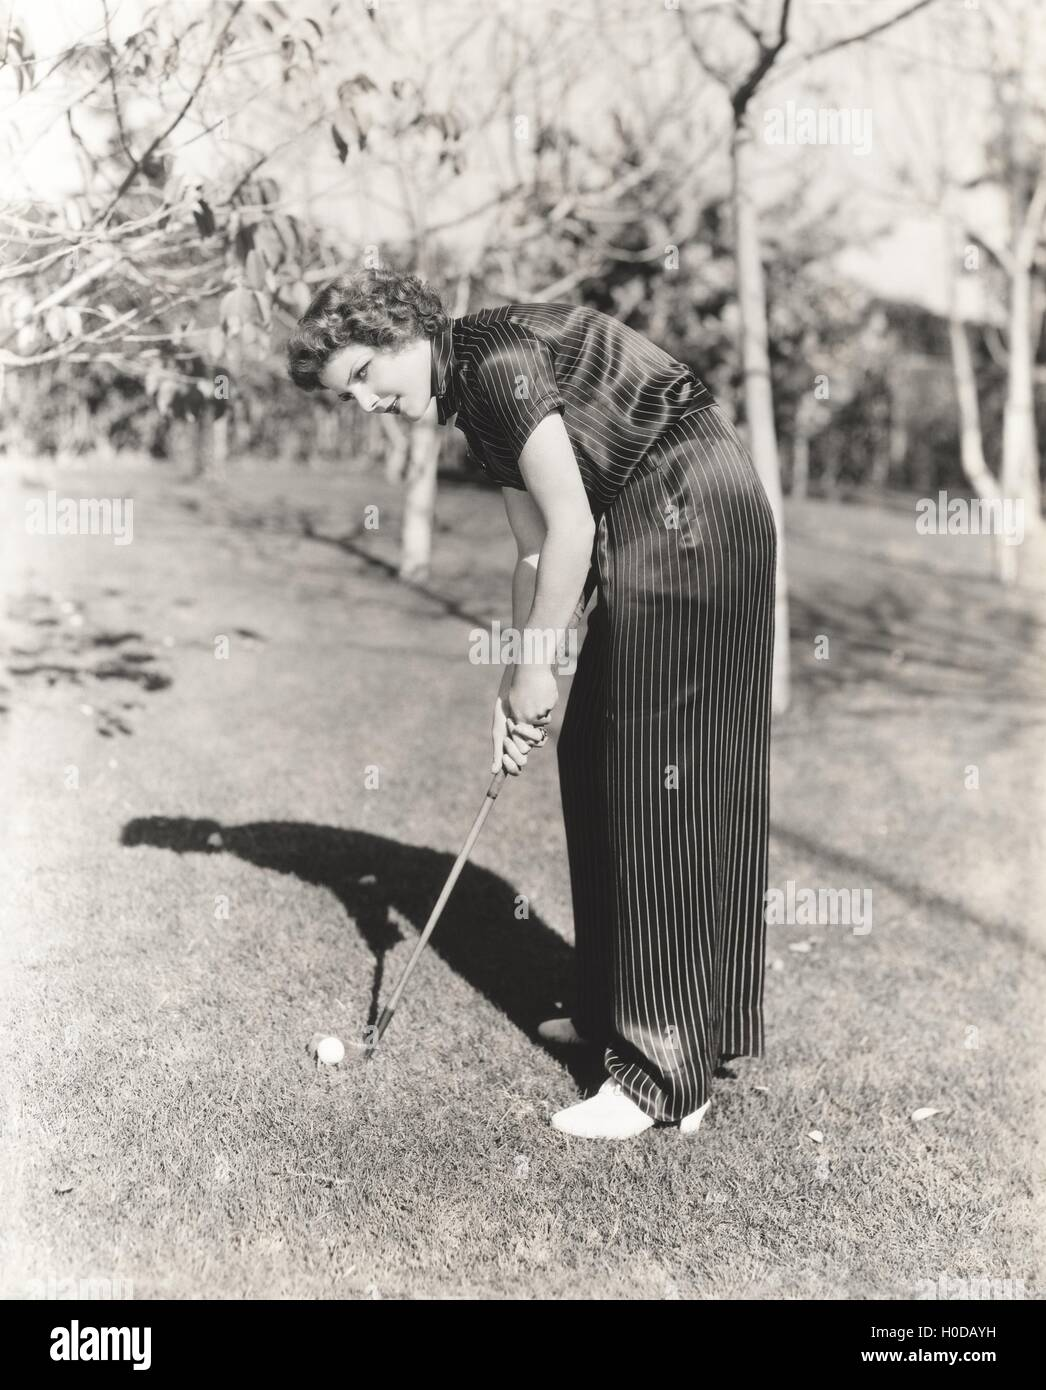 Full length portrait of young woman playing golf on field - Stock Image